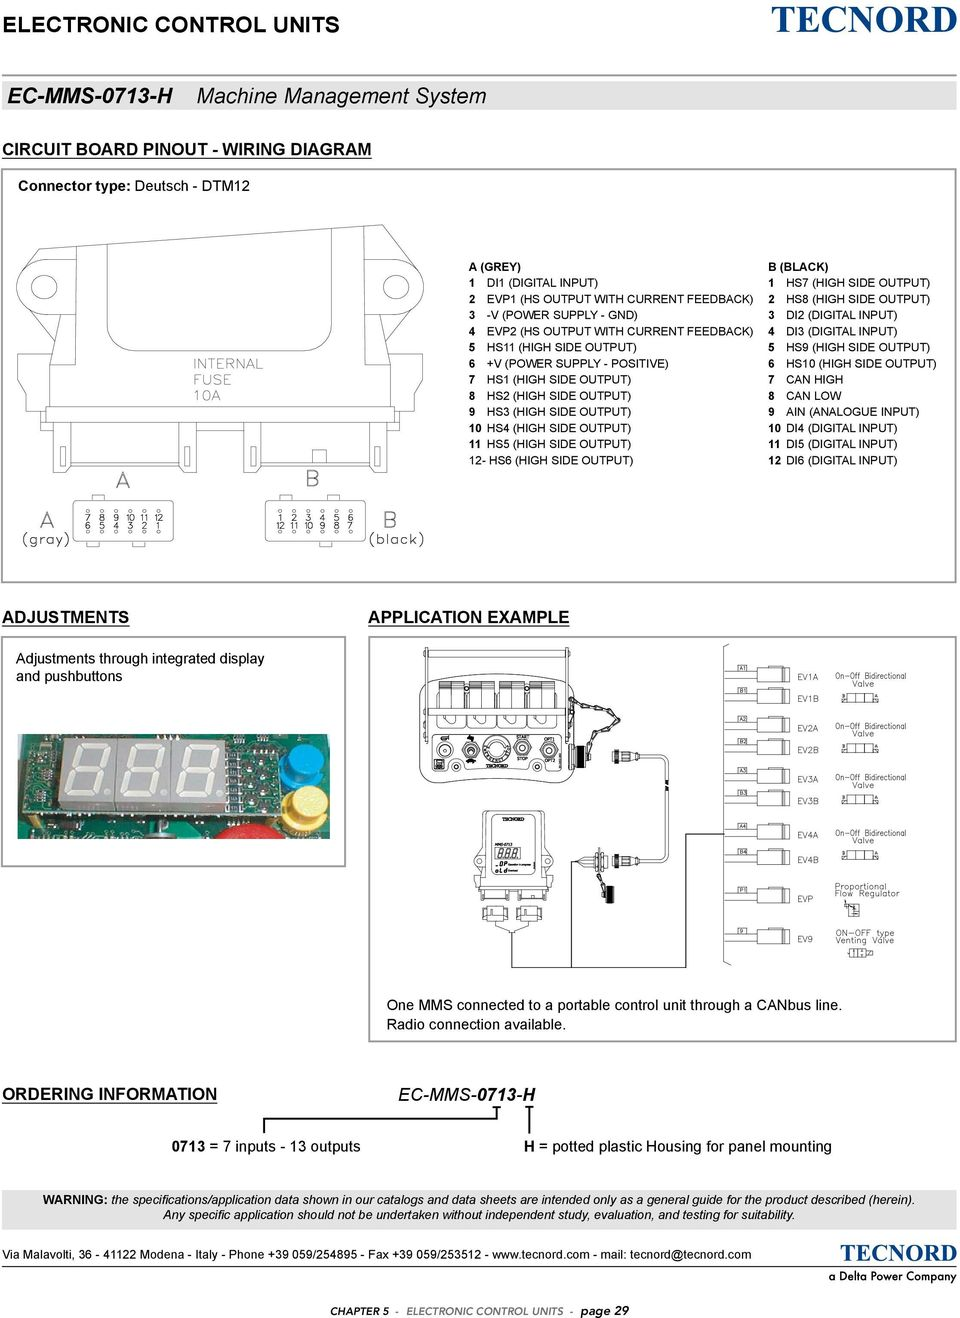 Electronic Control Units Machine Management Systems Description Gauges Wire Harness Moreover Flex A Lite Fan Controller Wiring Diagram 1 Di1 Current Digital Input Feedback 2 Out 5 High Side